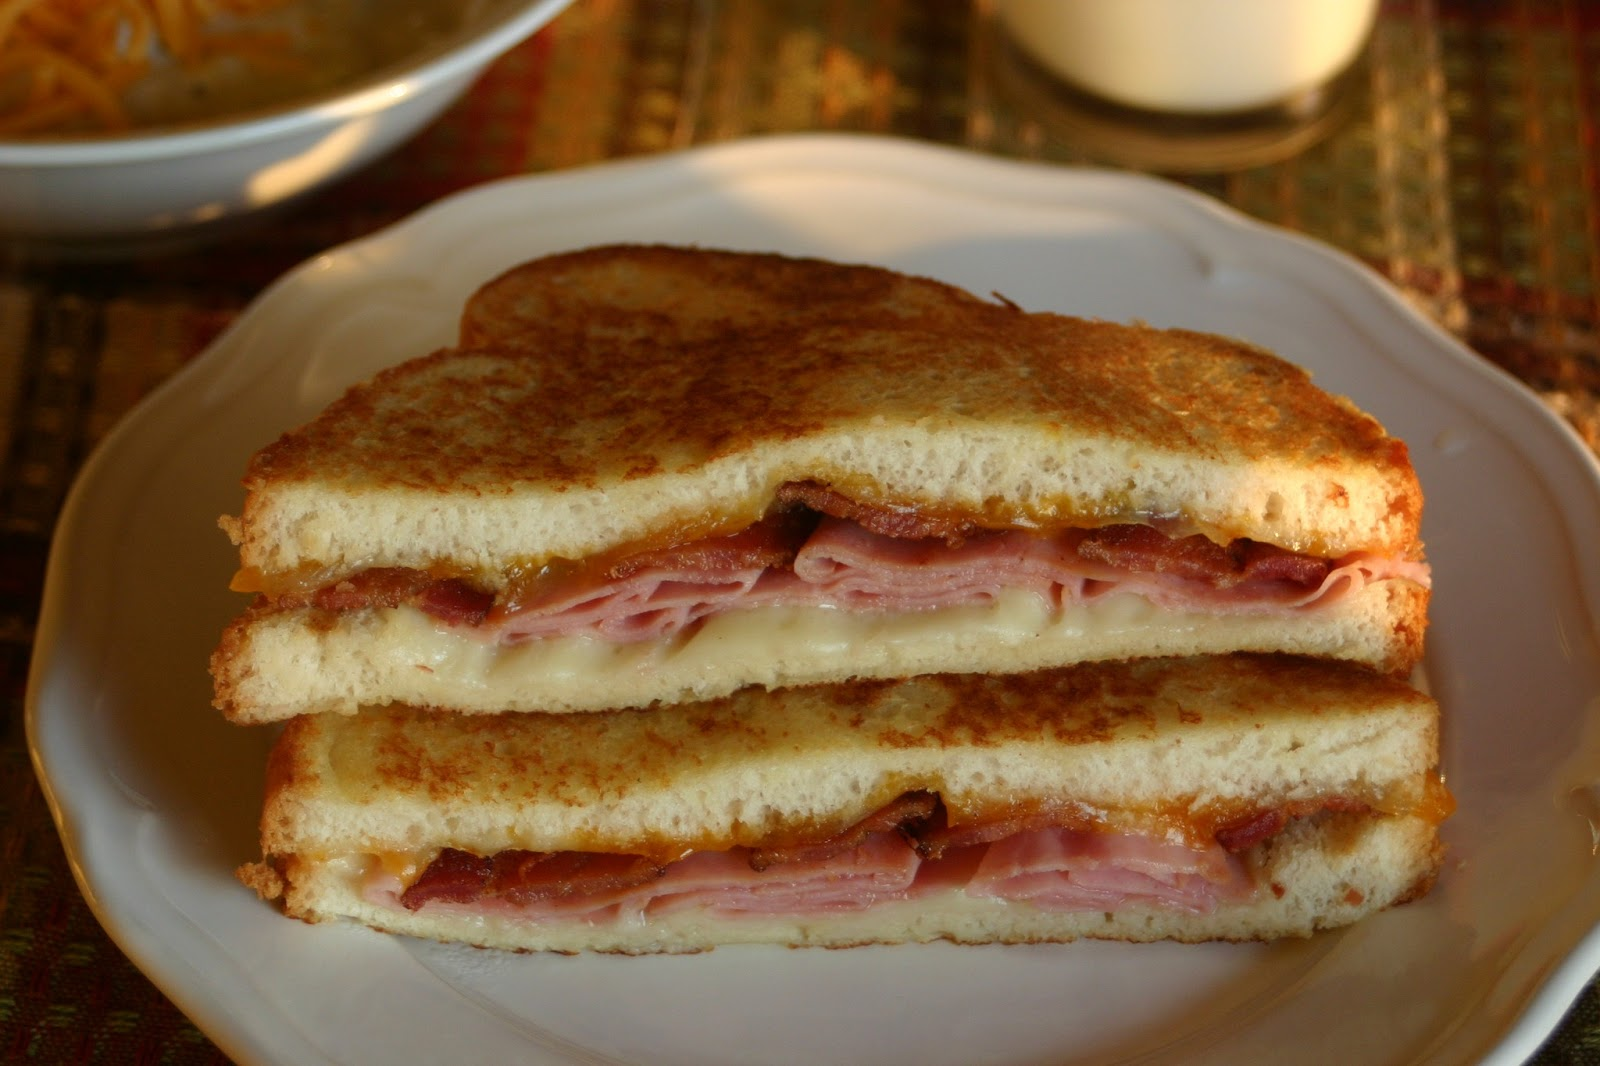 ... Cookies and more: Beer Battered Grilled Ham, Bacon and Cheese Sandwich